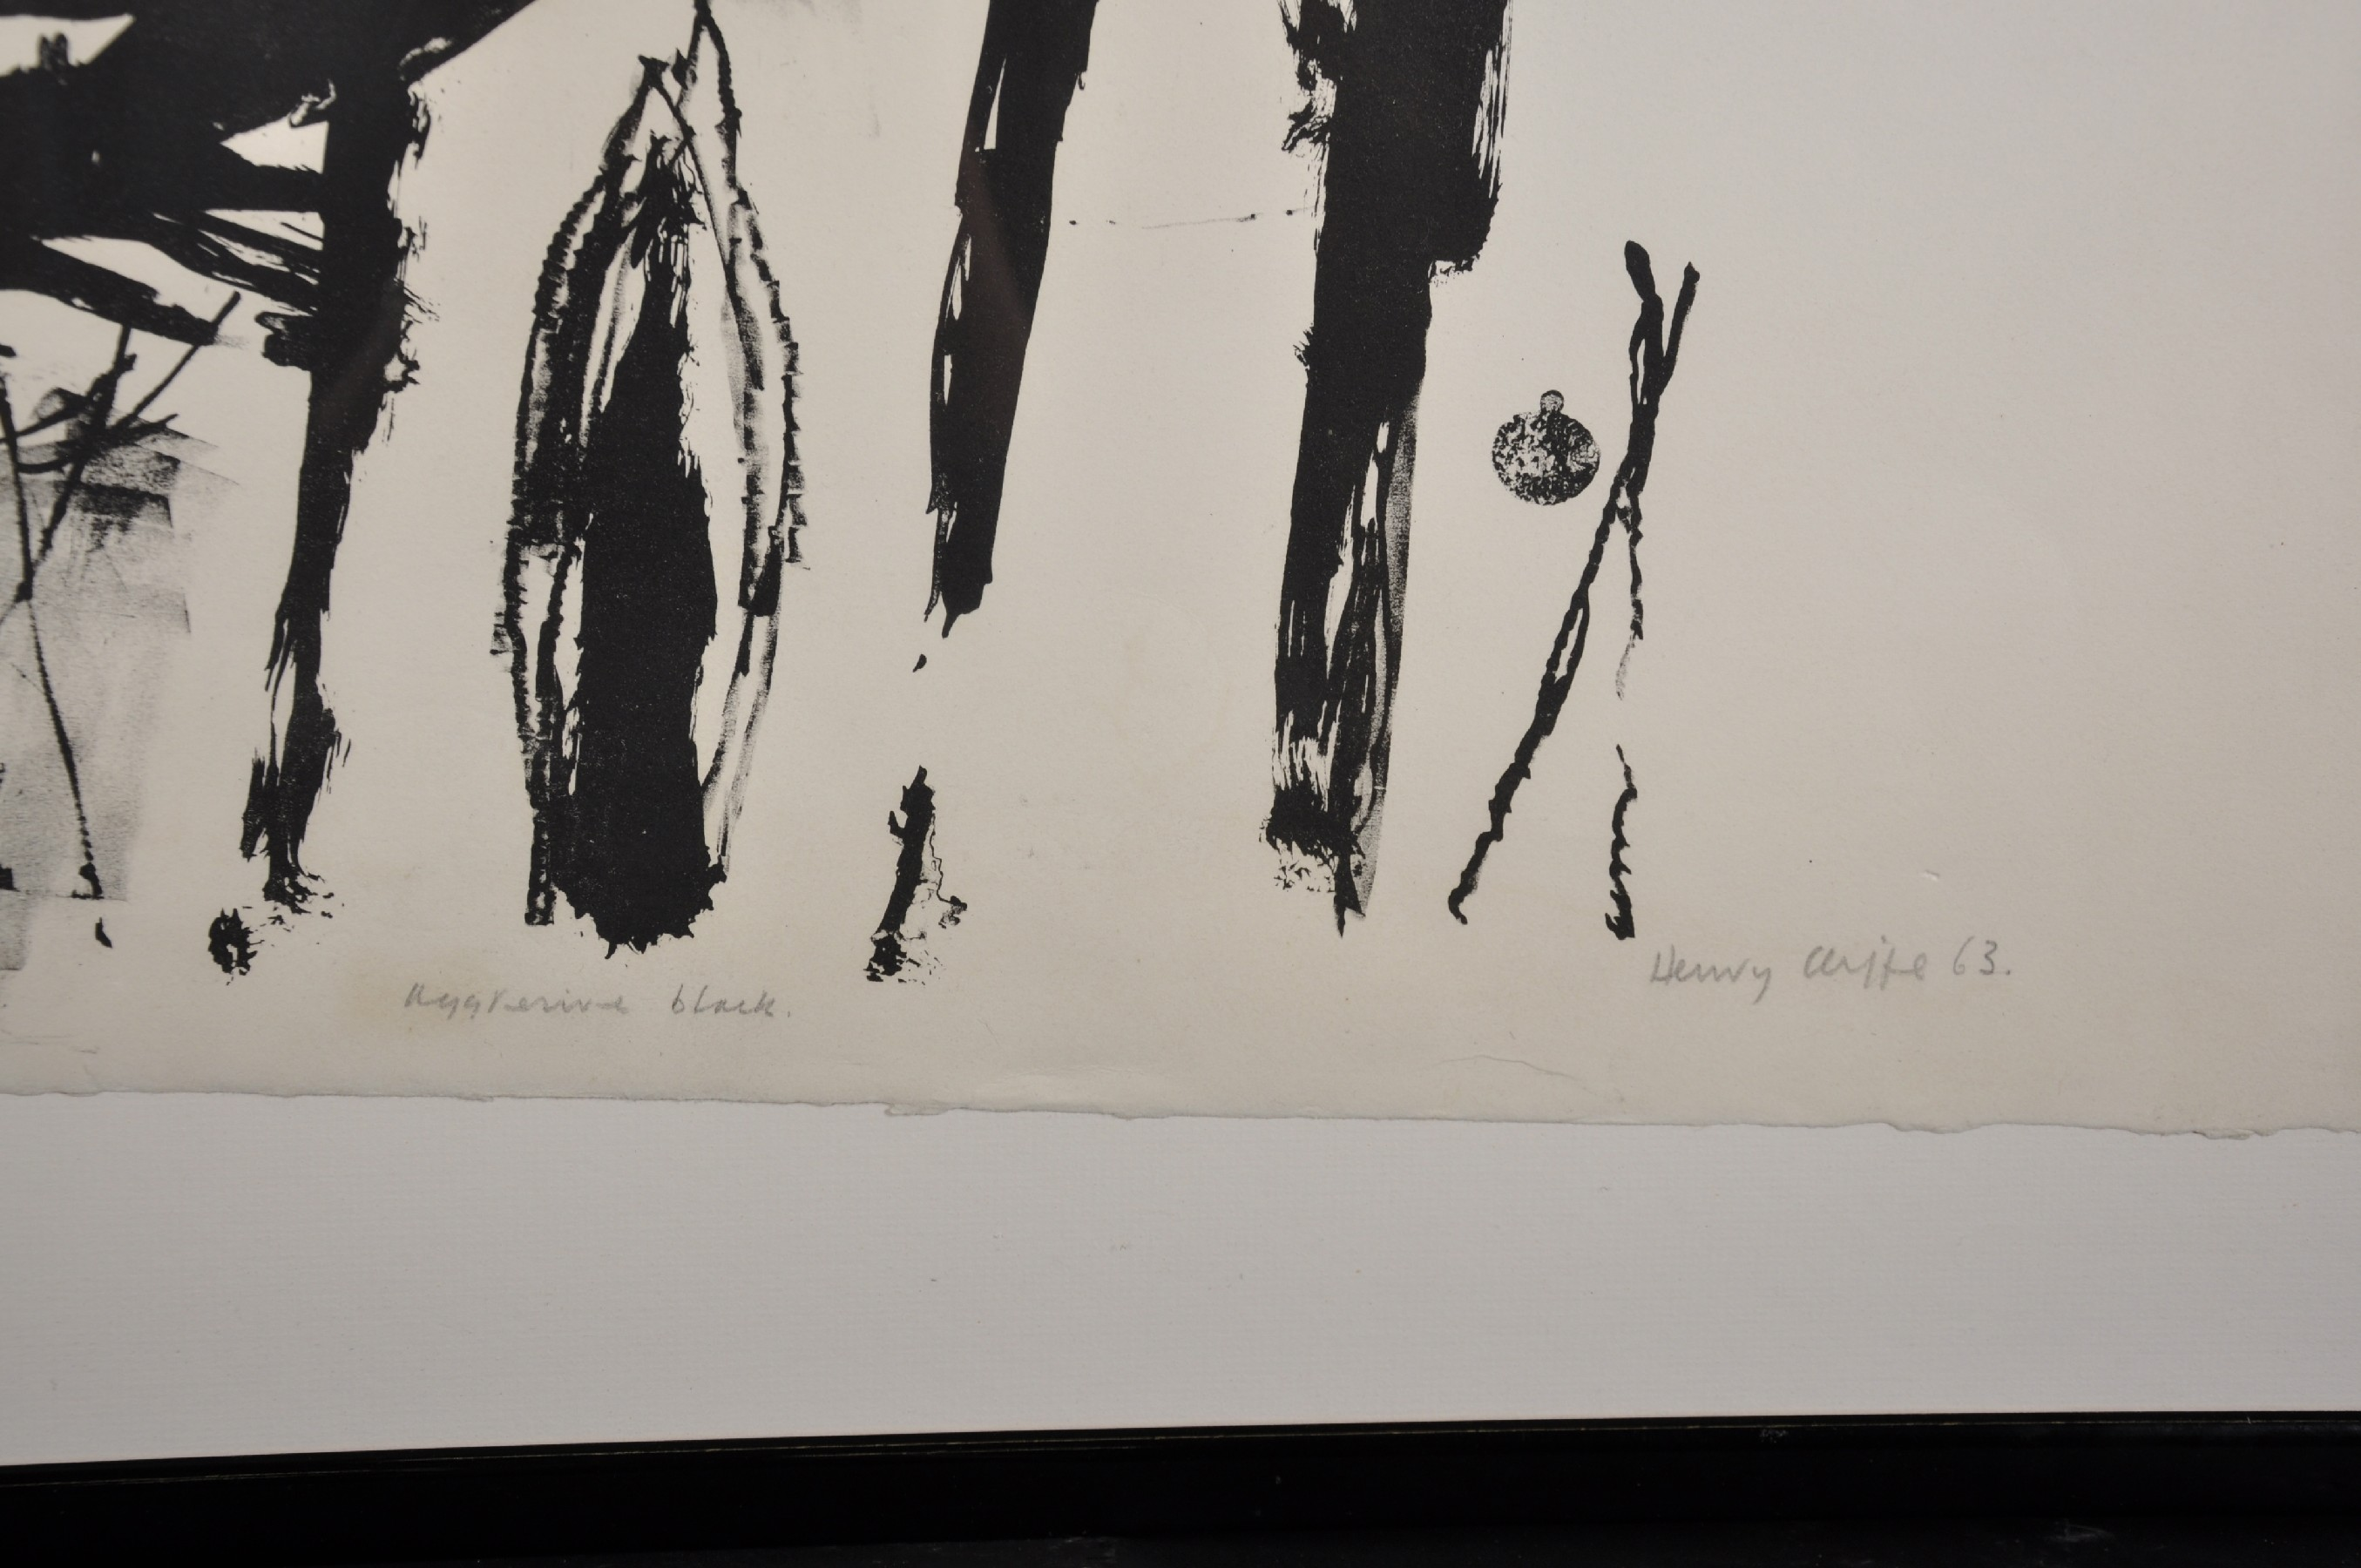 """Henry Cliffe (1919-1983) British. """"Aggresive [sic] Black"""", Lithograph, Signed, Inscribed and - Image 3 of 4"""